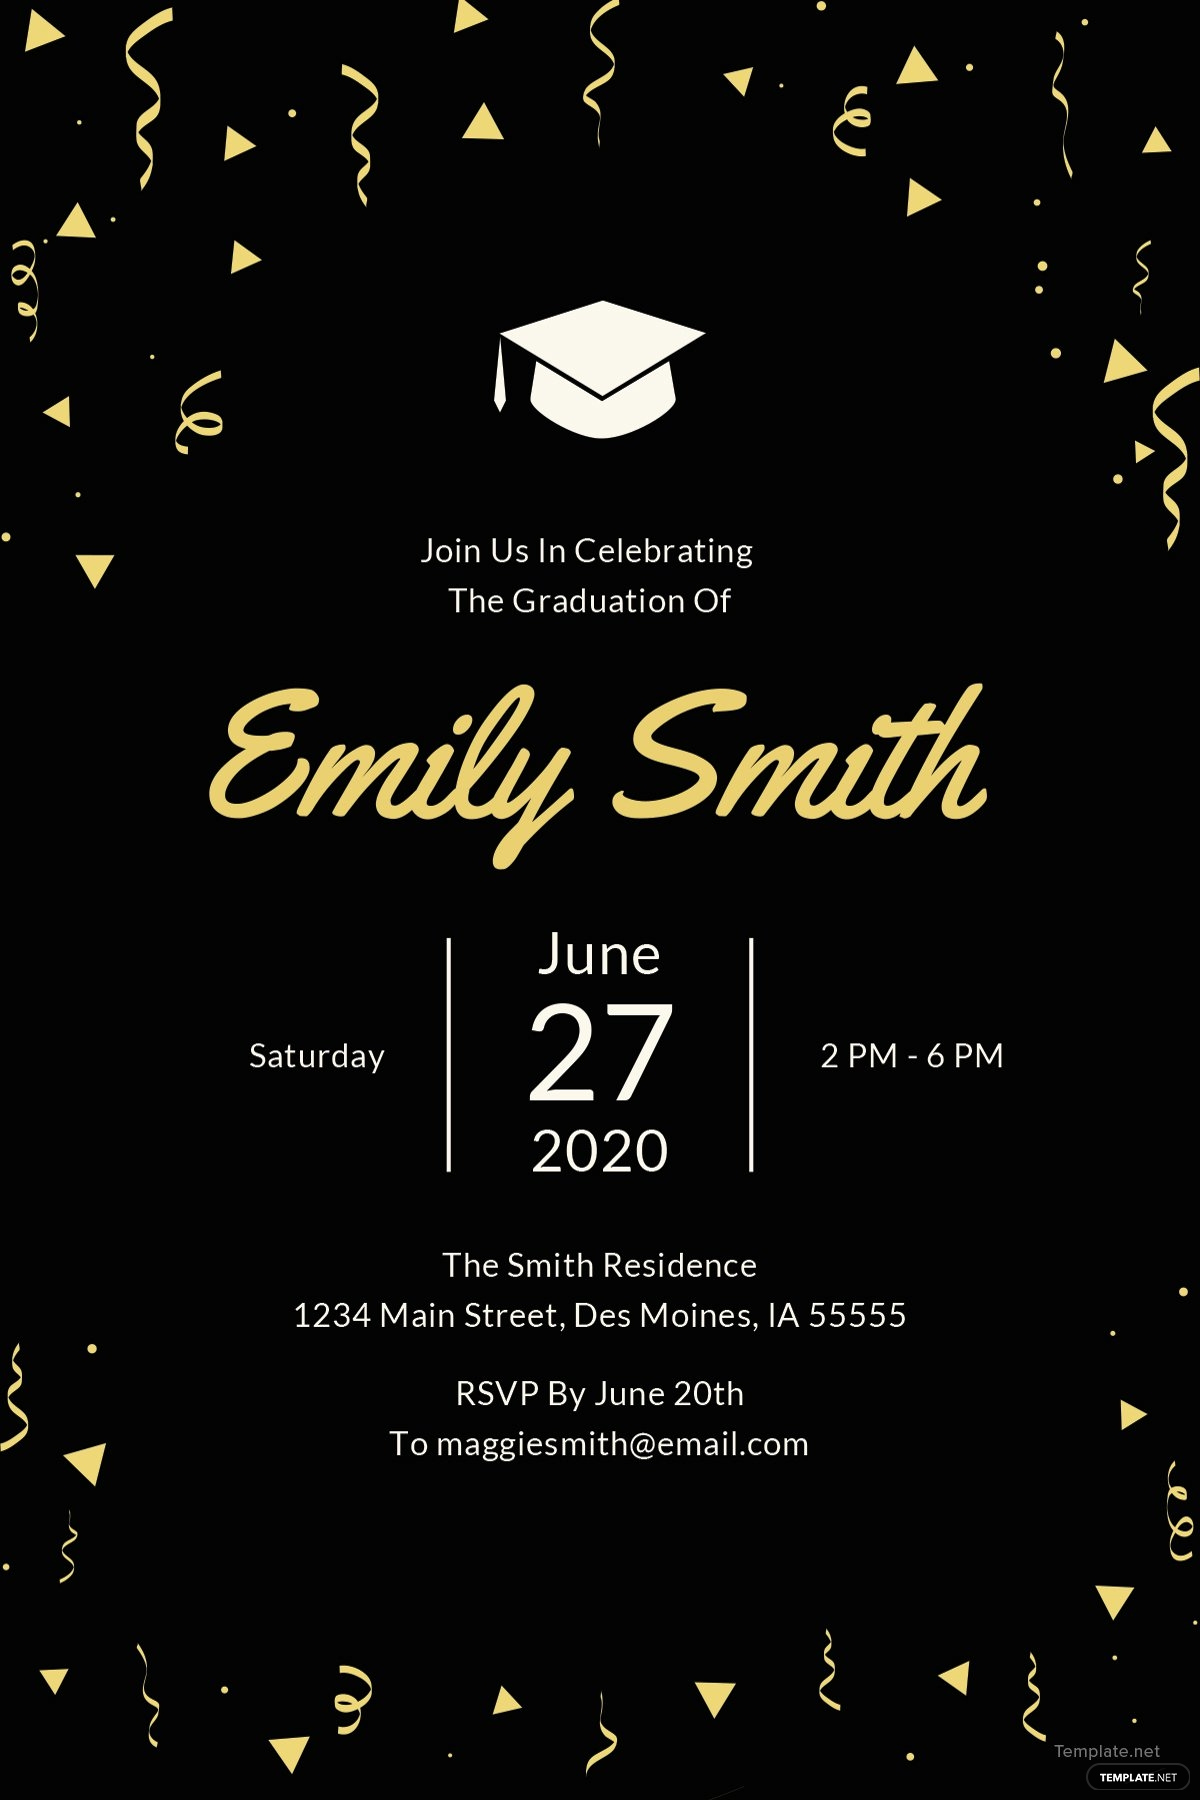 Graduation Invitation Templates Microsoft Publisher Fresh Free Graduation Invitation Template In Microsoft Word